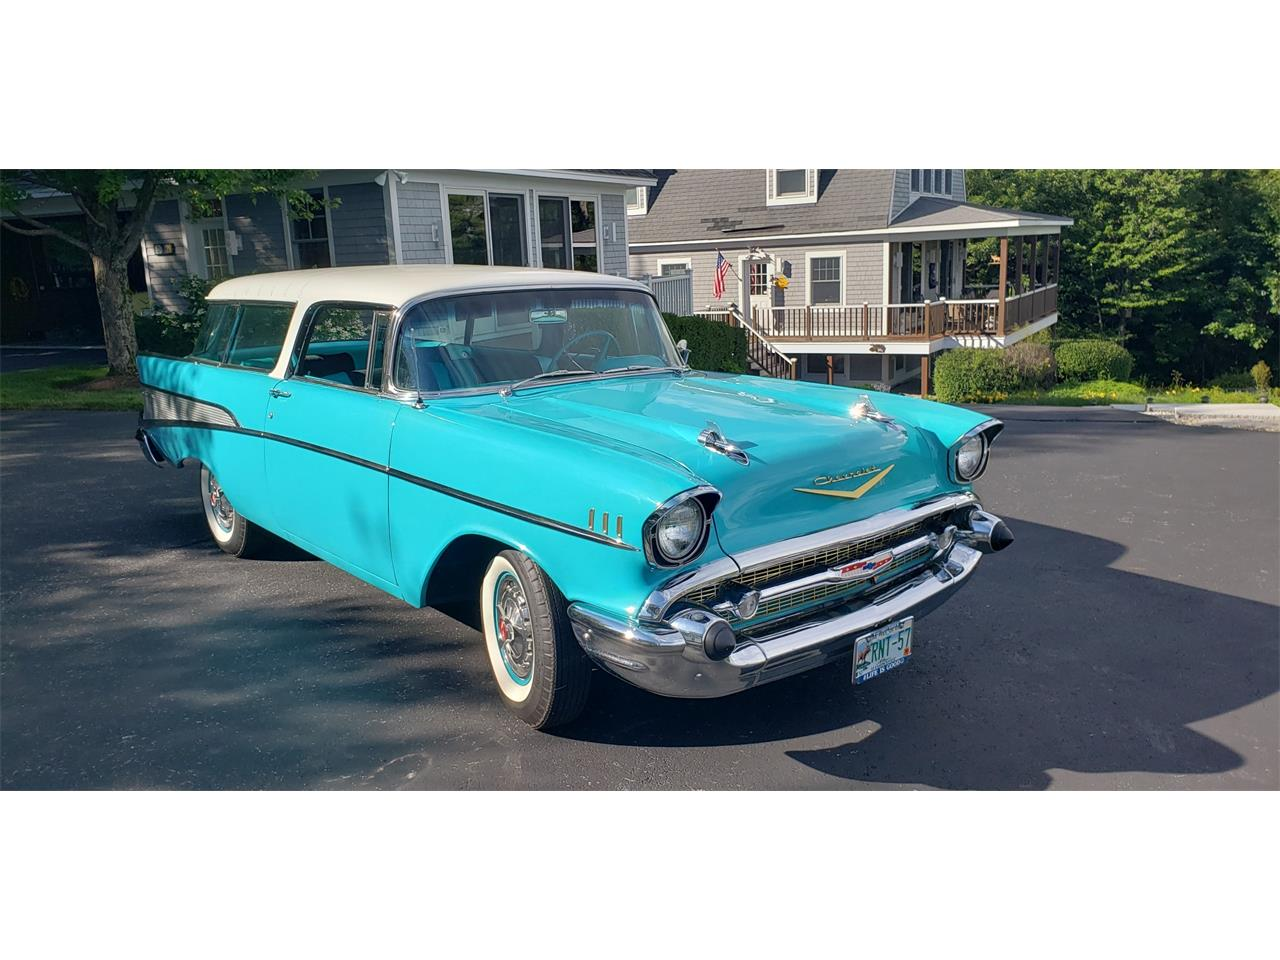 1957 Chevrolet Bel Air Nomad (CC-1364391) for sale in SUNAPEE, New Hampshire